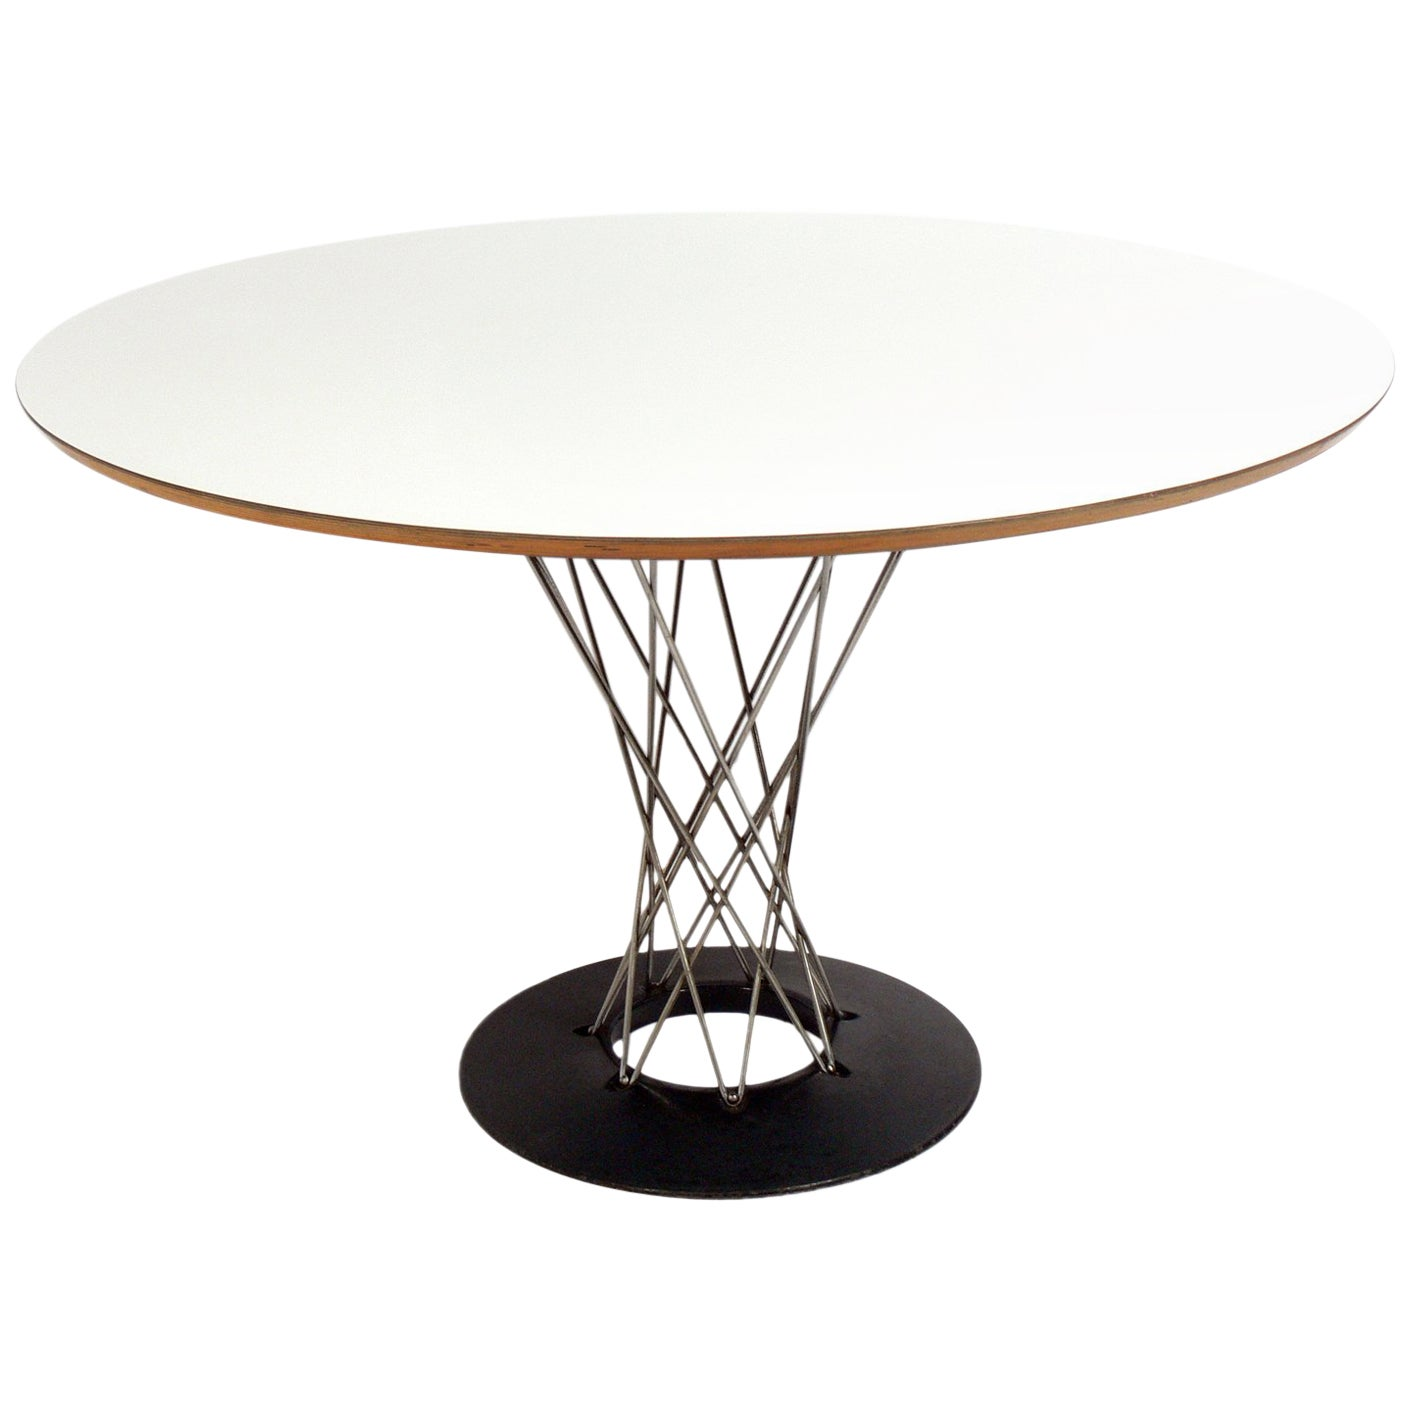 Isamu Noguchi for Knoll Cyclone Dining Table